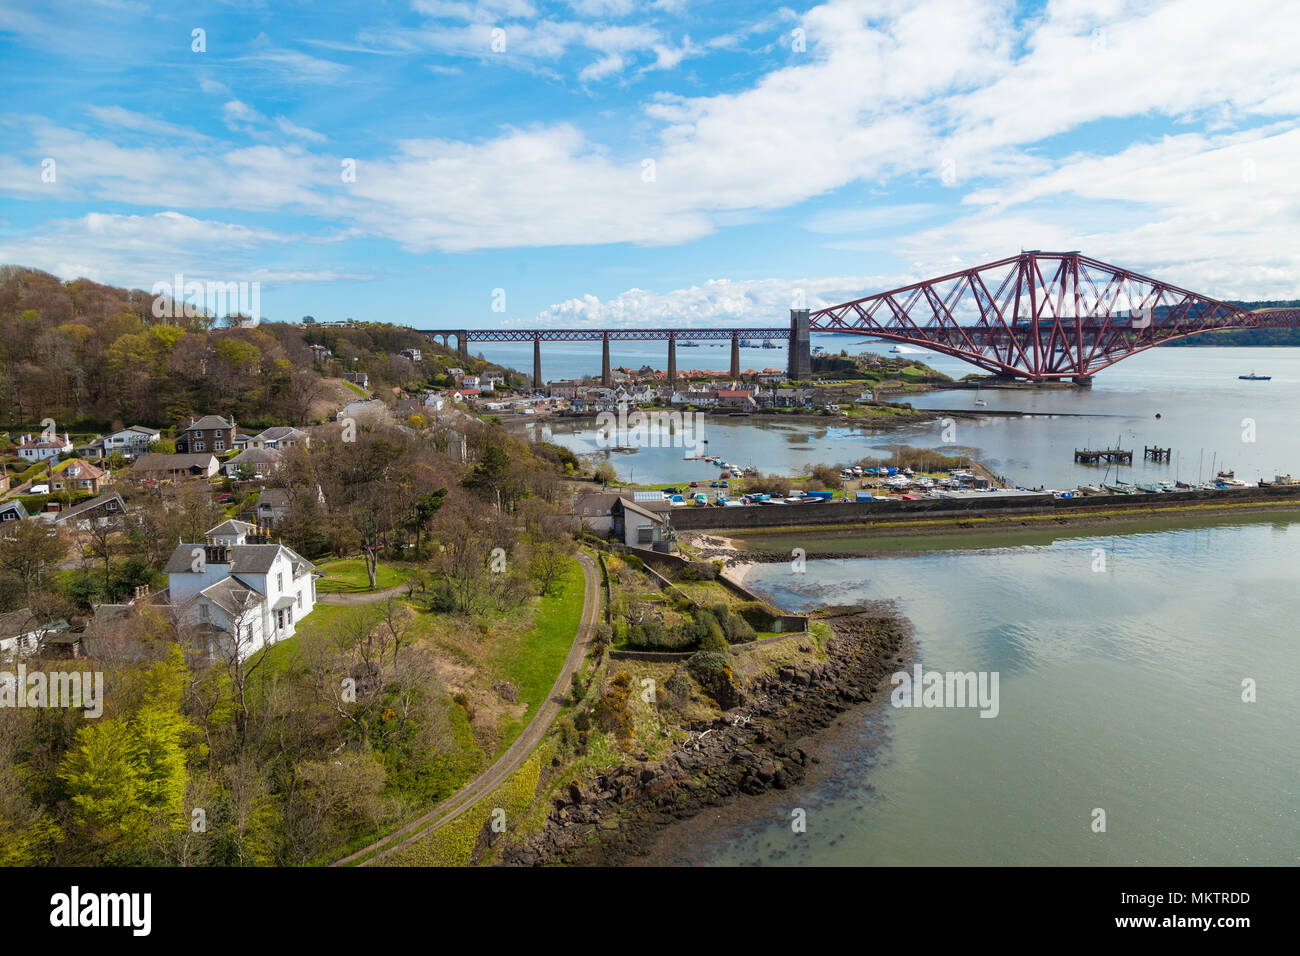 North Queensferry seen from the Forth Road Bridge, Fife Scotland - Stock Image